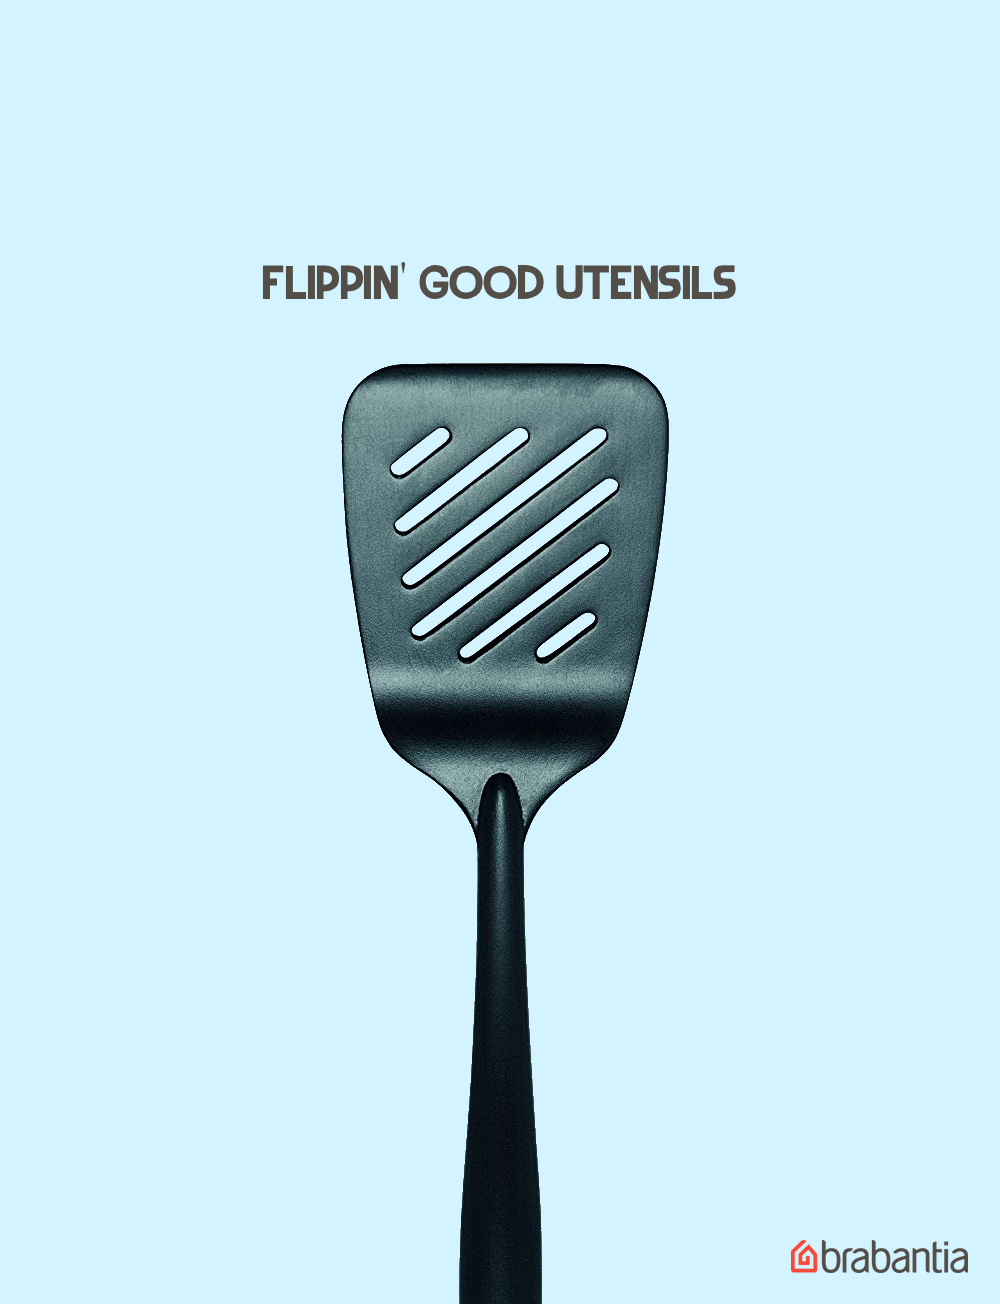 advertising idea for a spatula brand - flipping good utensils